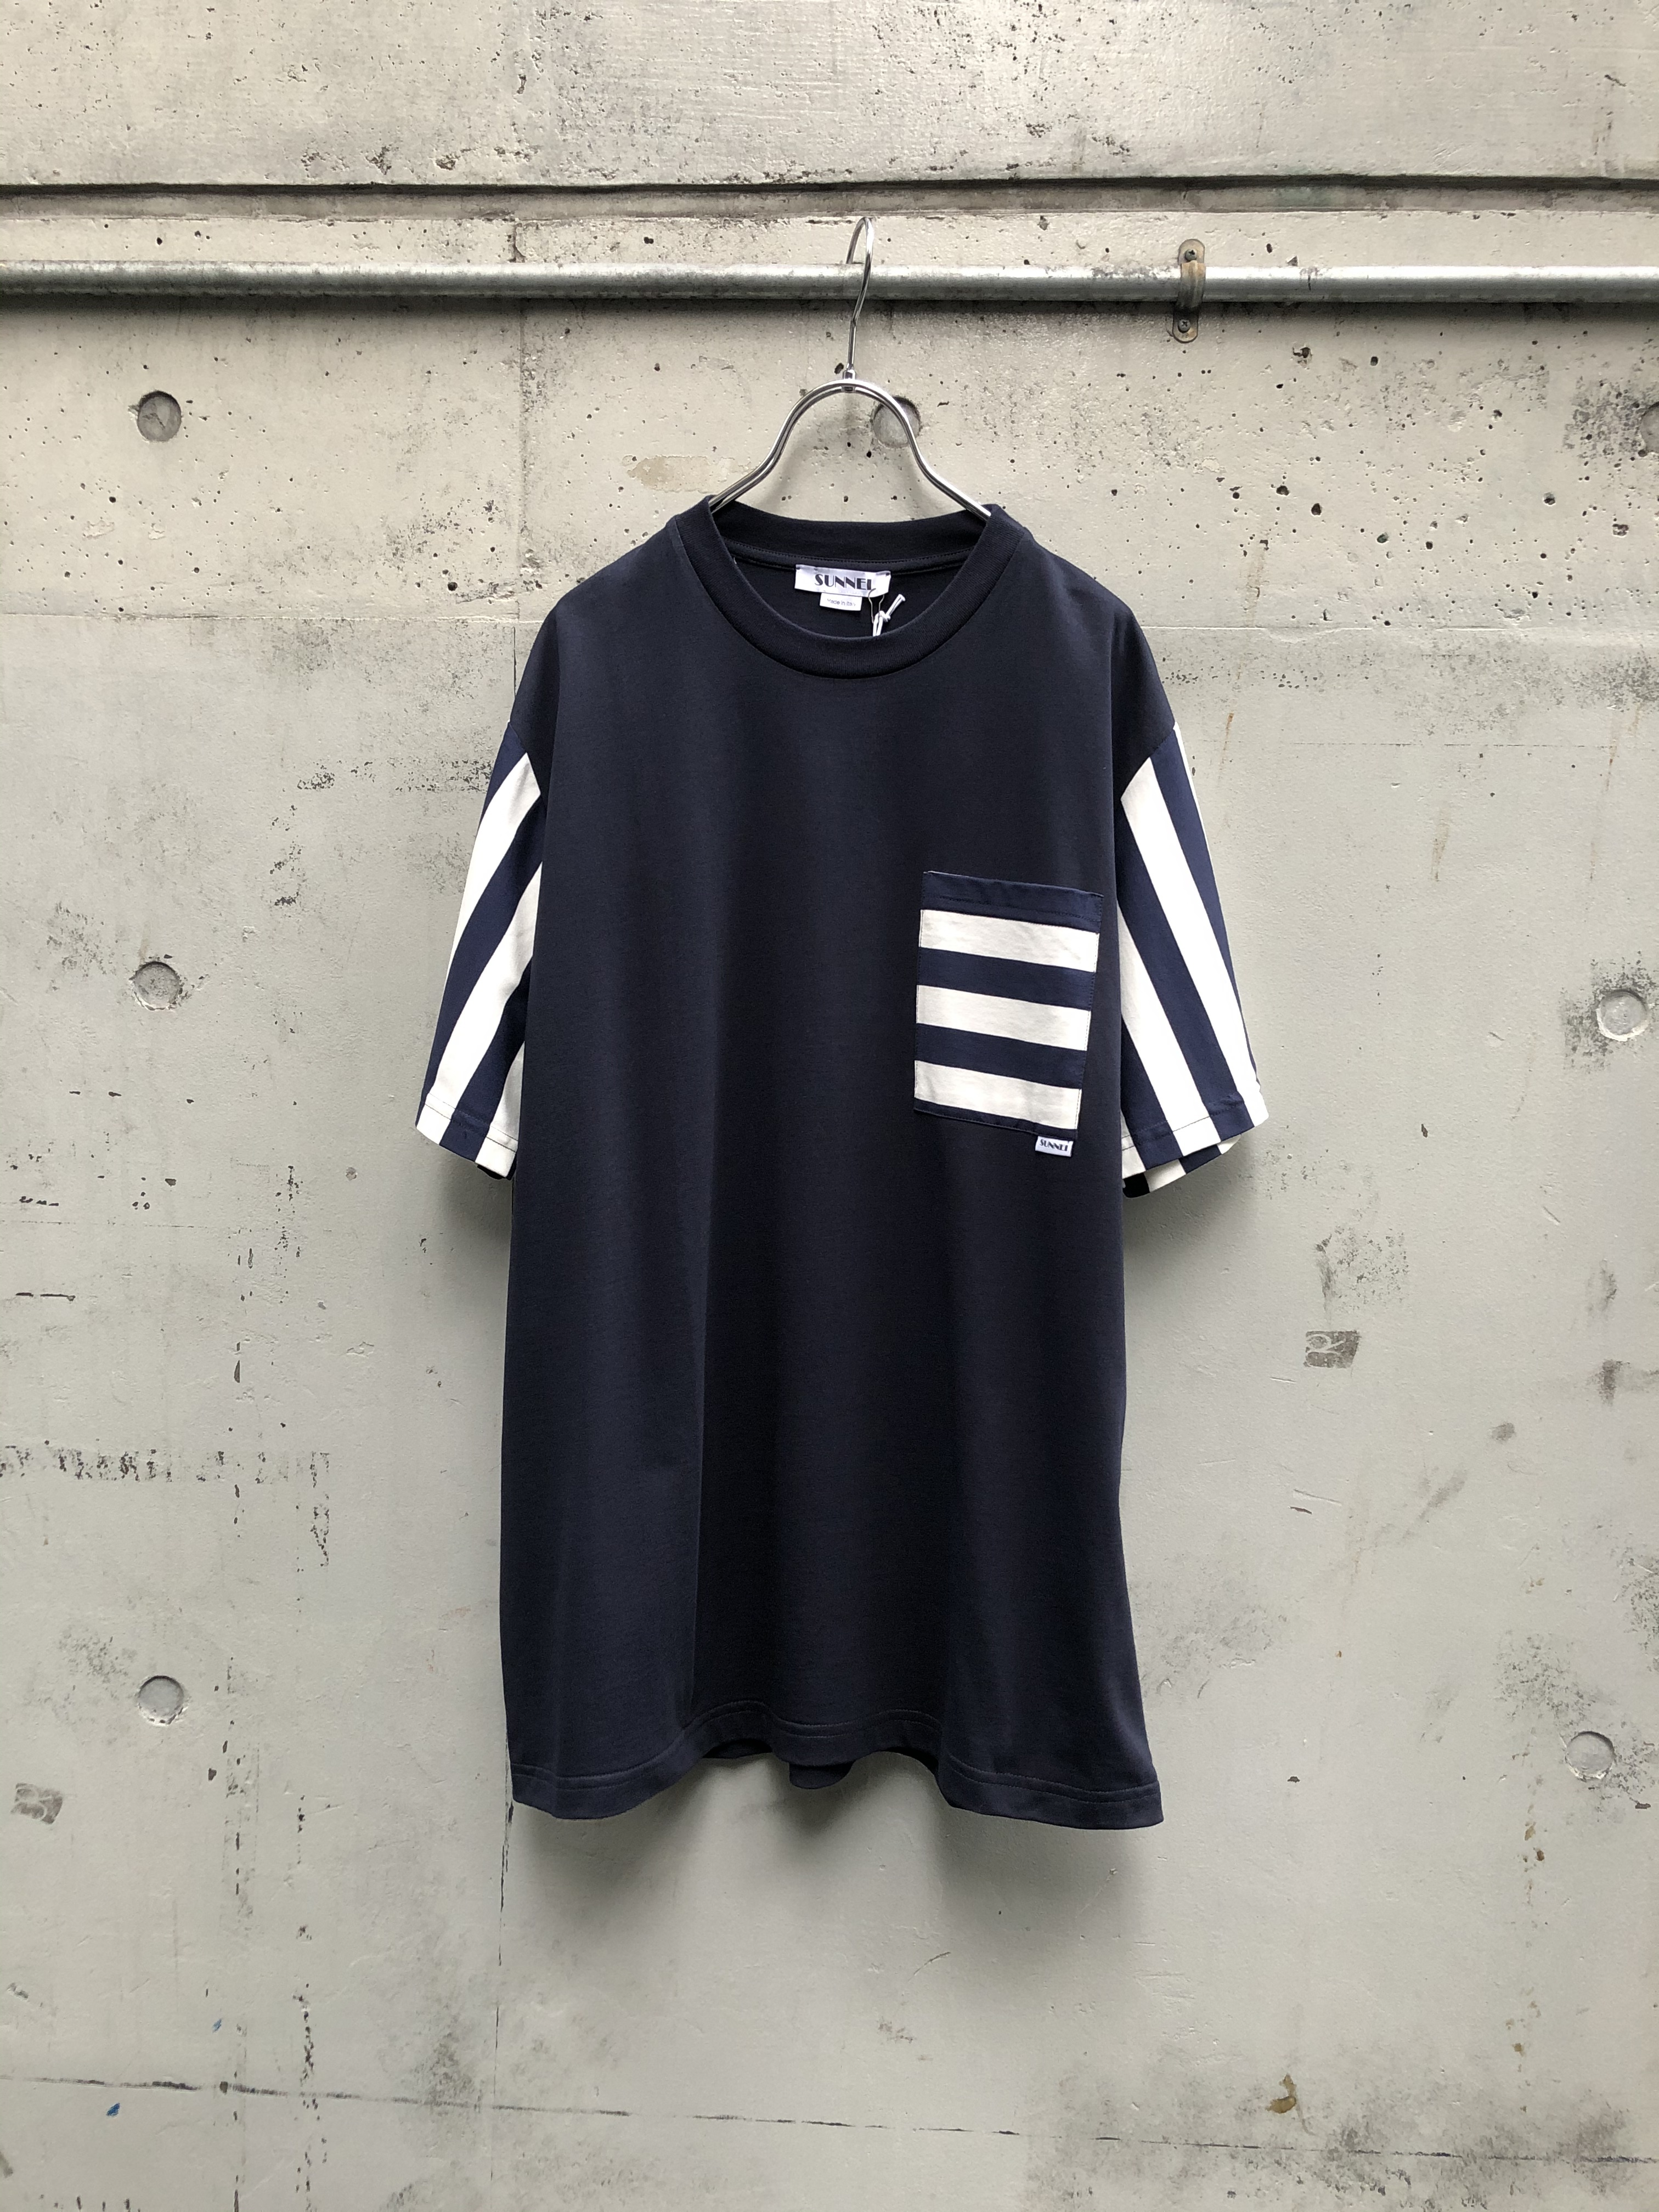 『SUNNEI』STRIPED SLEEVE WITH POCKET T-SHIRT